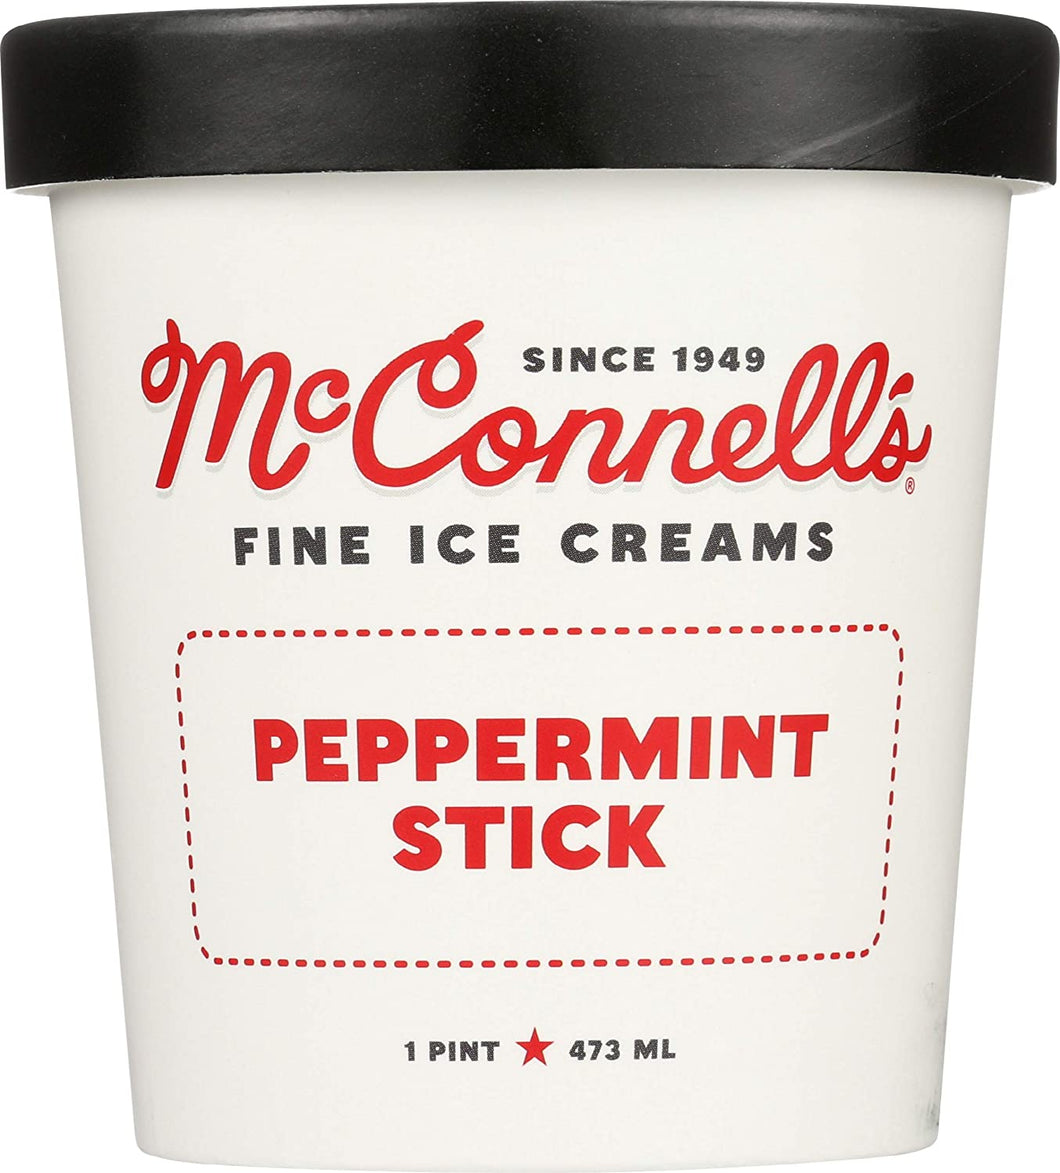 McConnell's Fine Ice Cream, Peppermint Stick